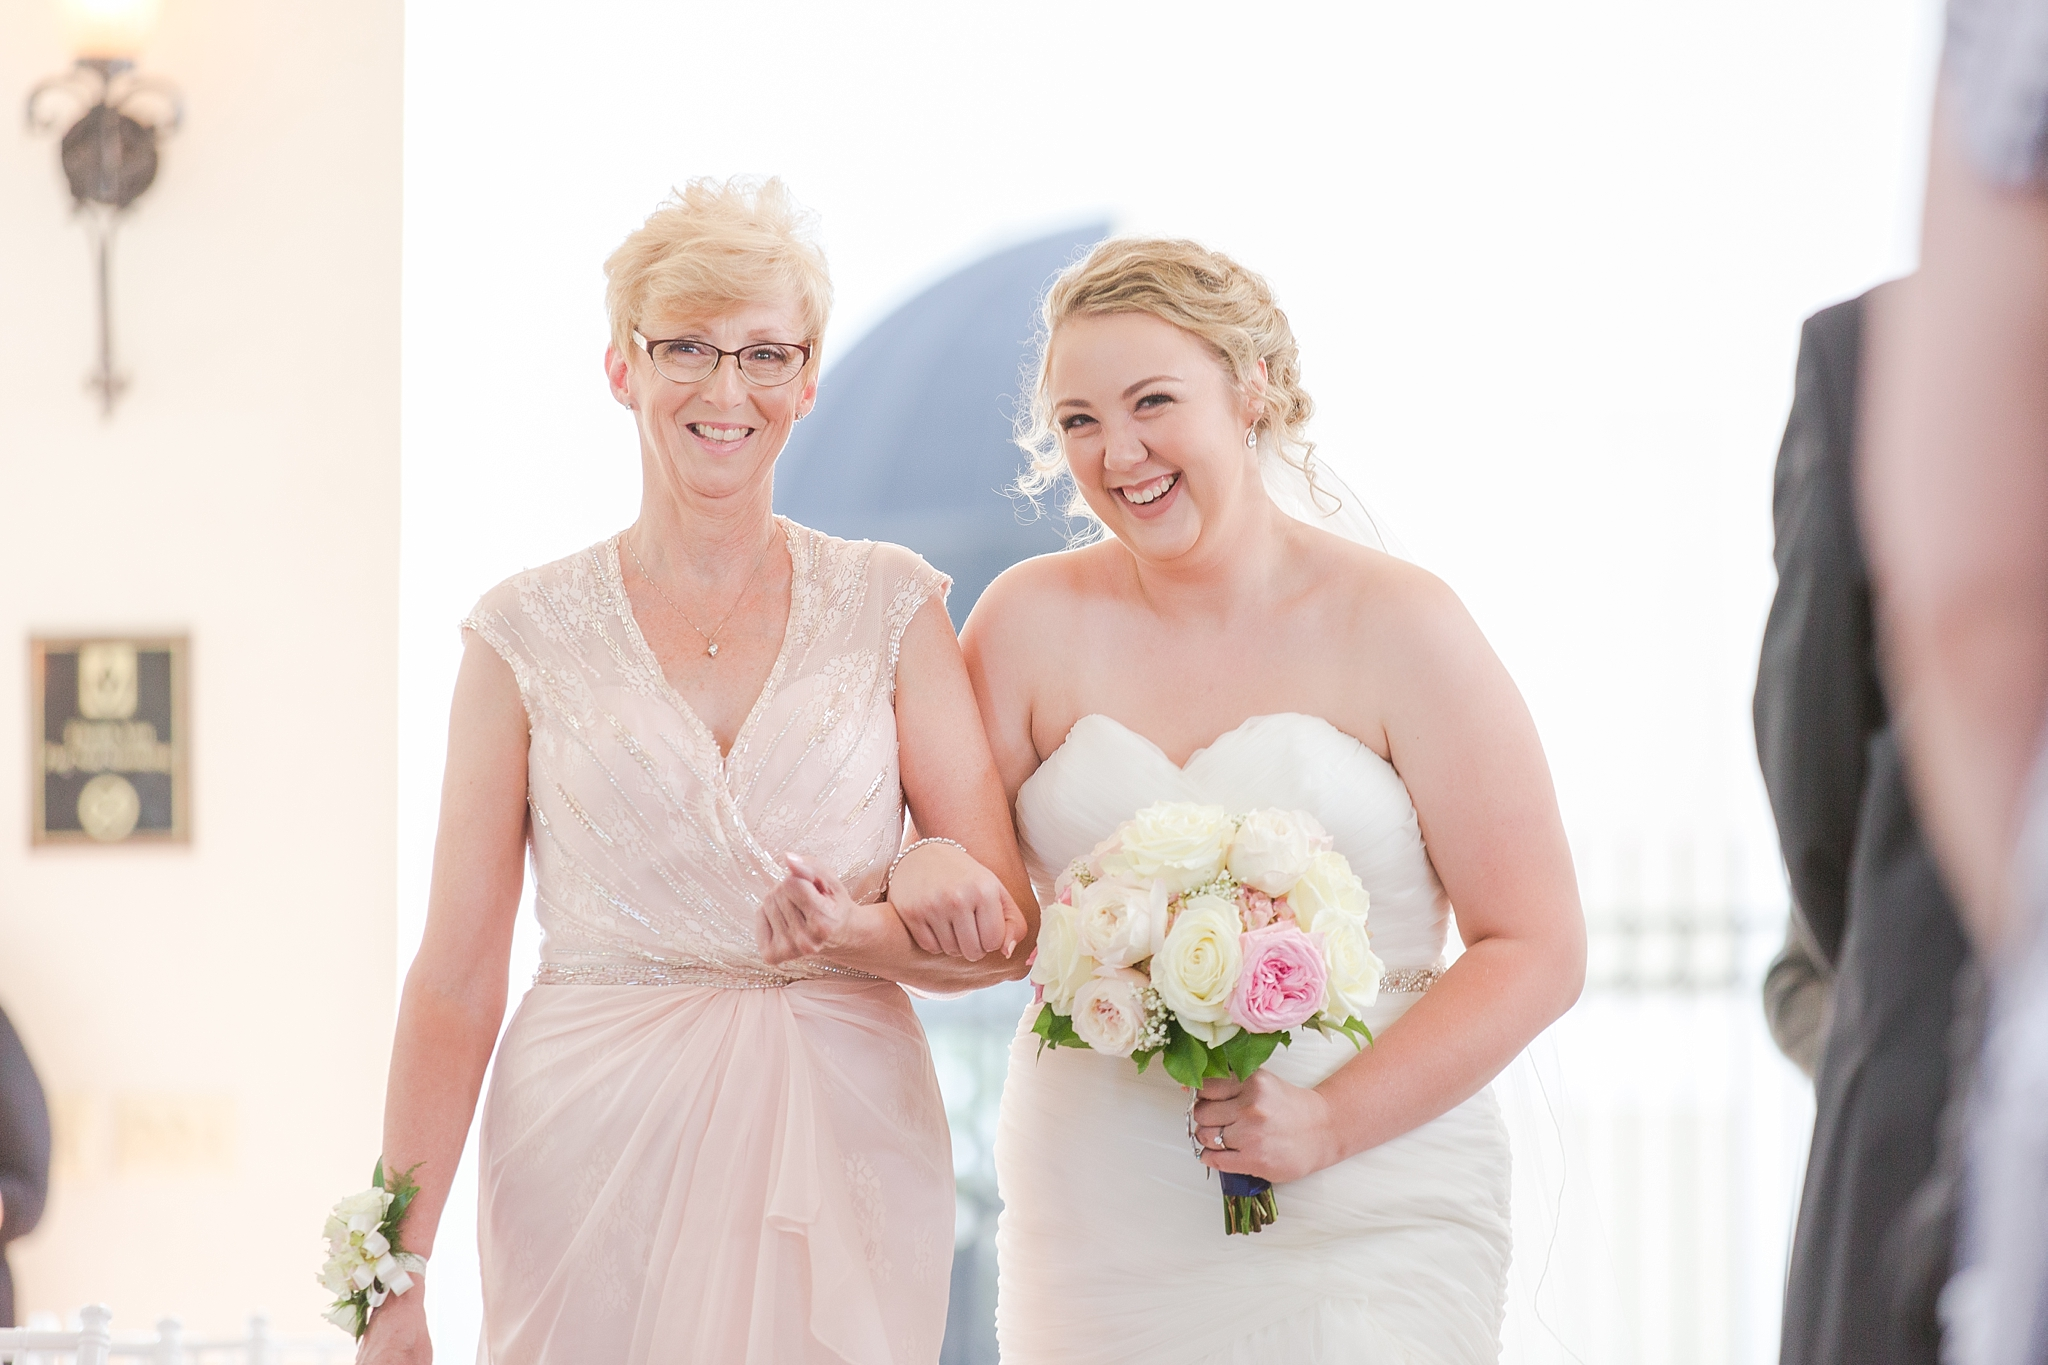 romantic-artful-candid-wedding-photos-in-detroit-lansing-ann-arbor-northern-michigan-and-chicago-by-courtney-carolyn-photography_0084.jpg